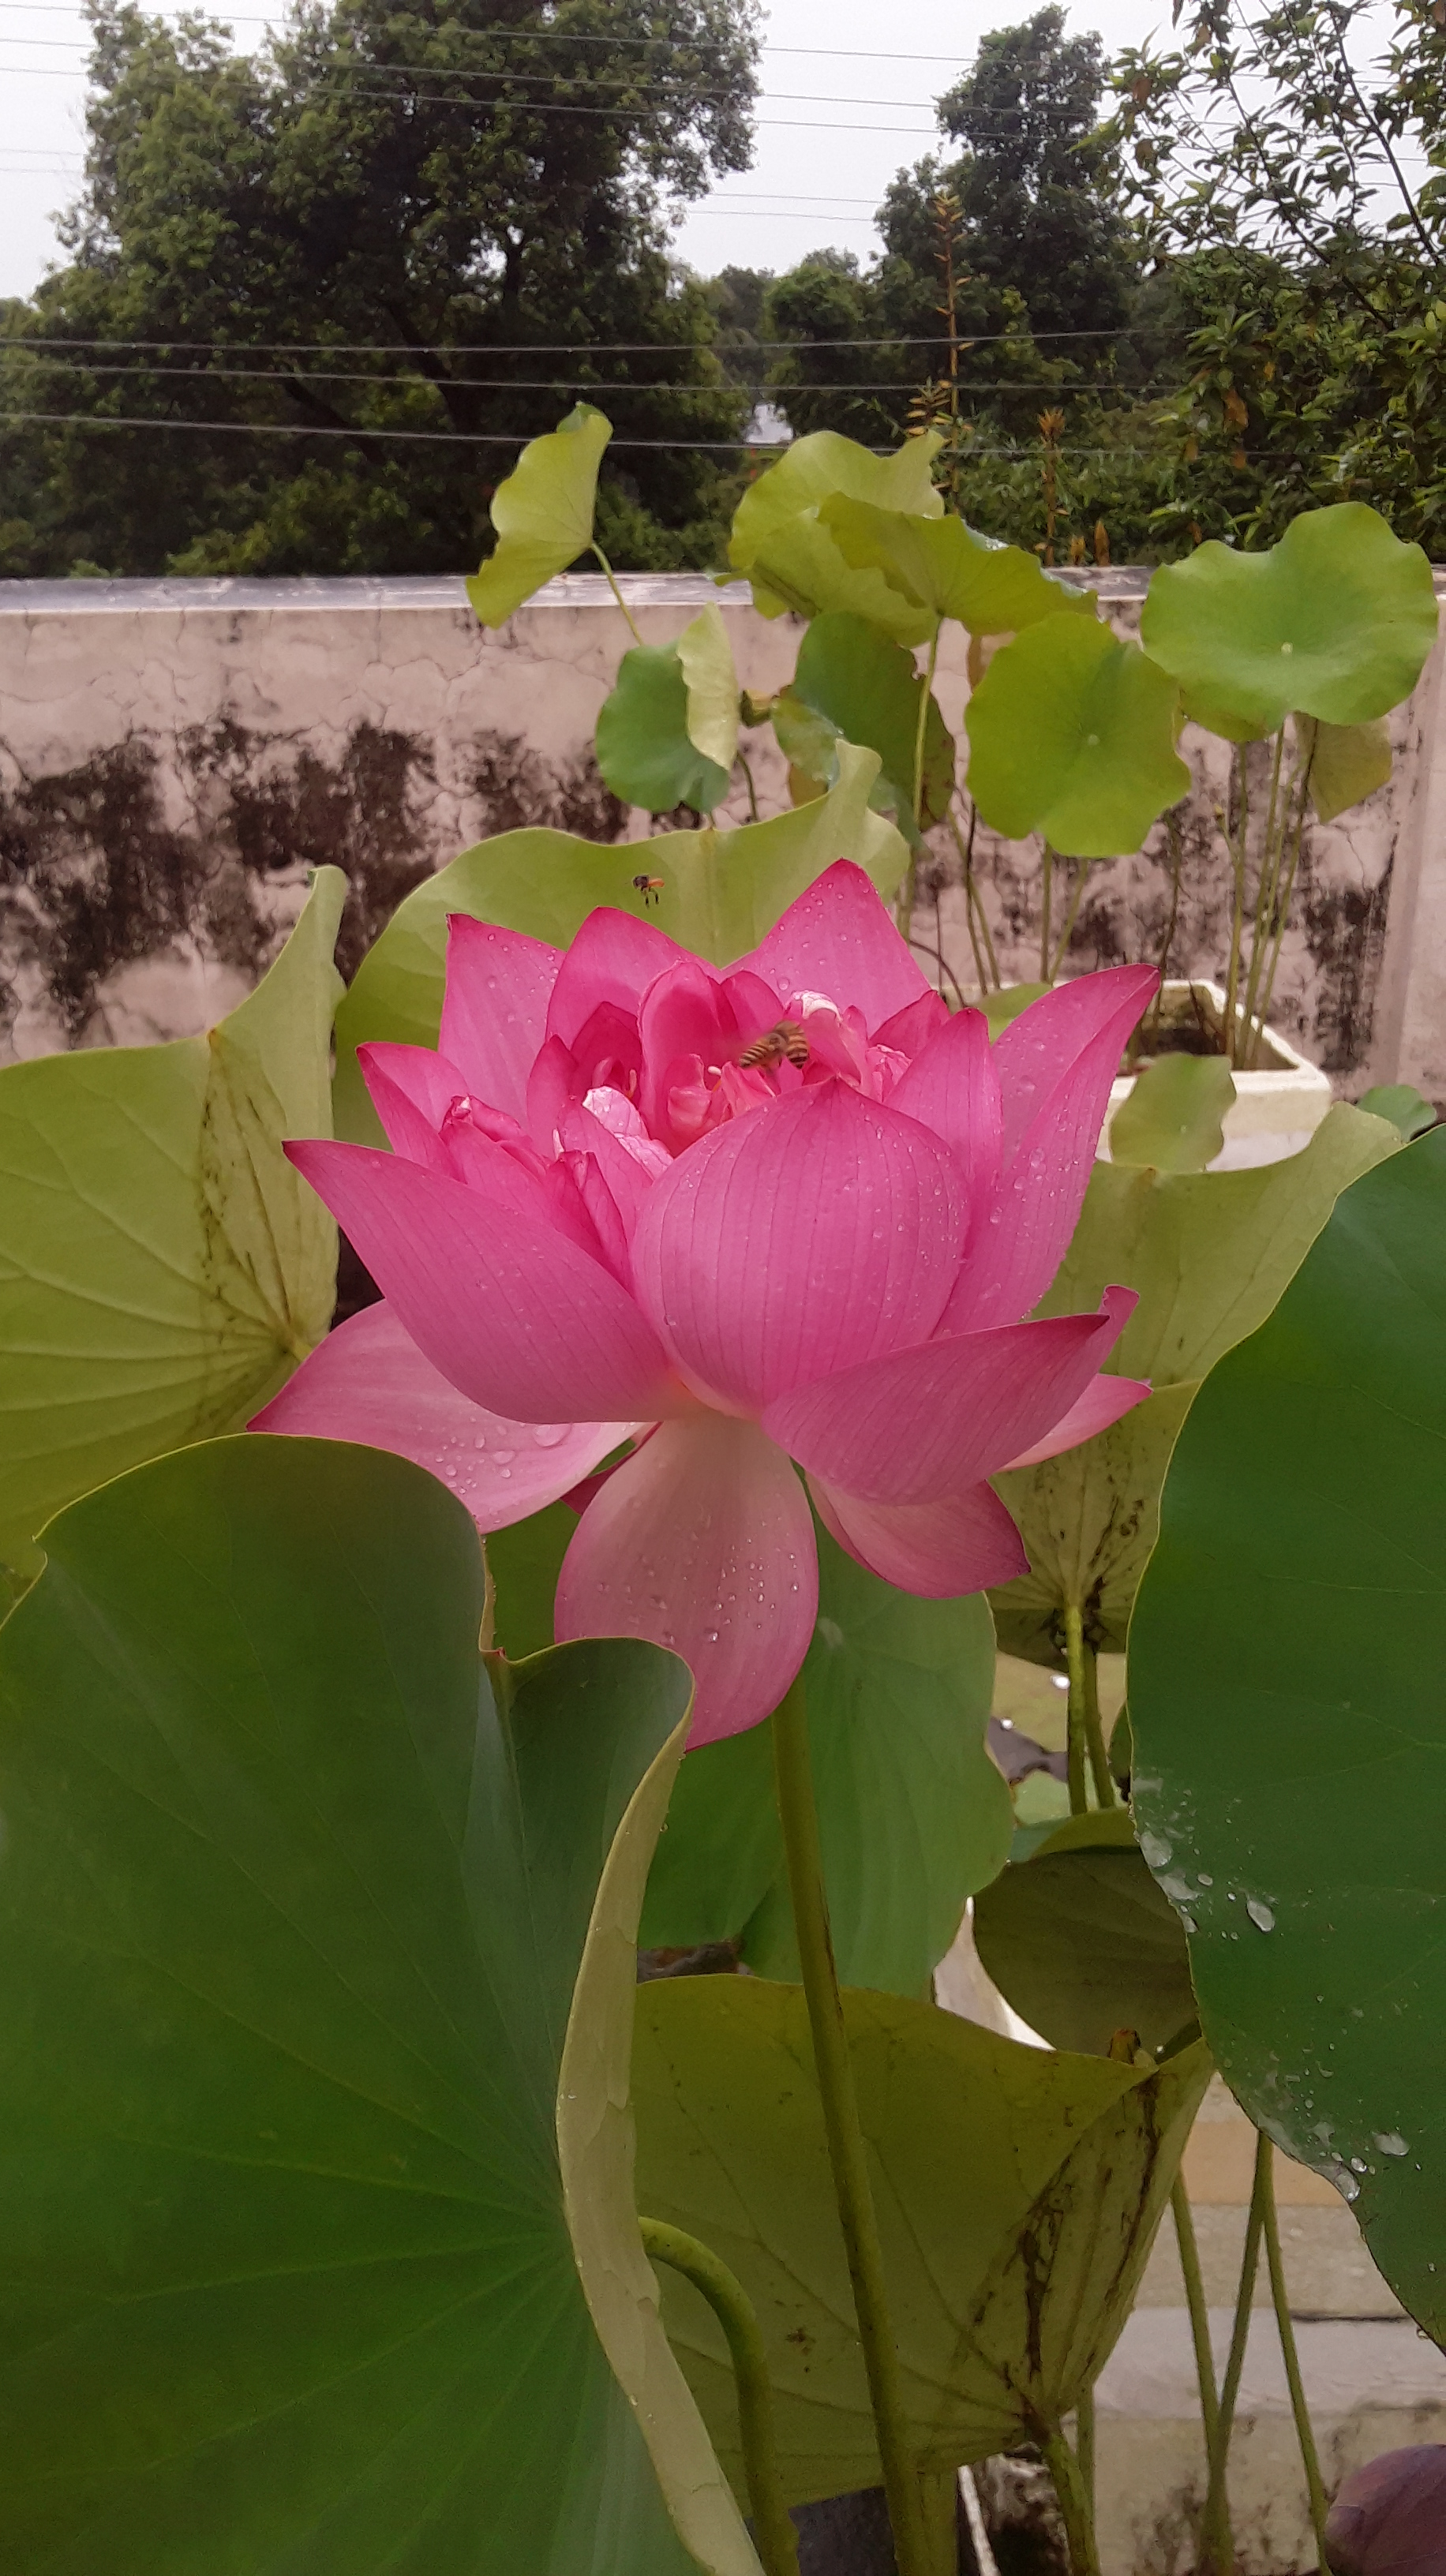 How one man in india is bringing the beauty of the lotus flower to how one man in india is bringing the beauty of the lotus flower to home gardens michael perry mr plant geek izmirmasajfo Images